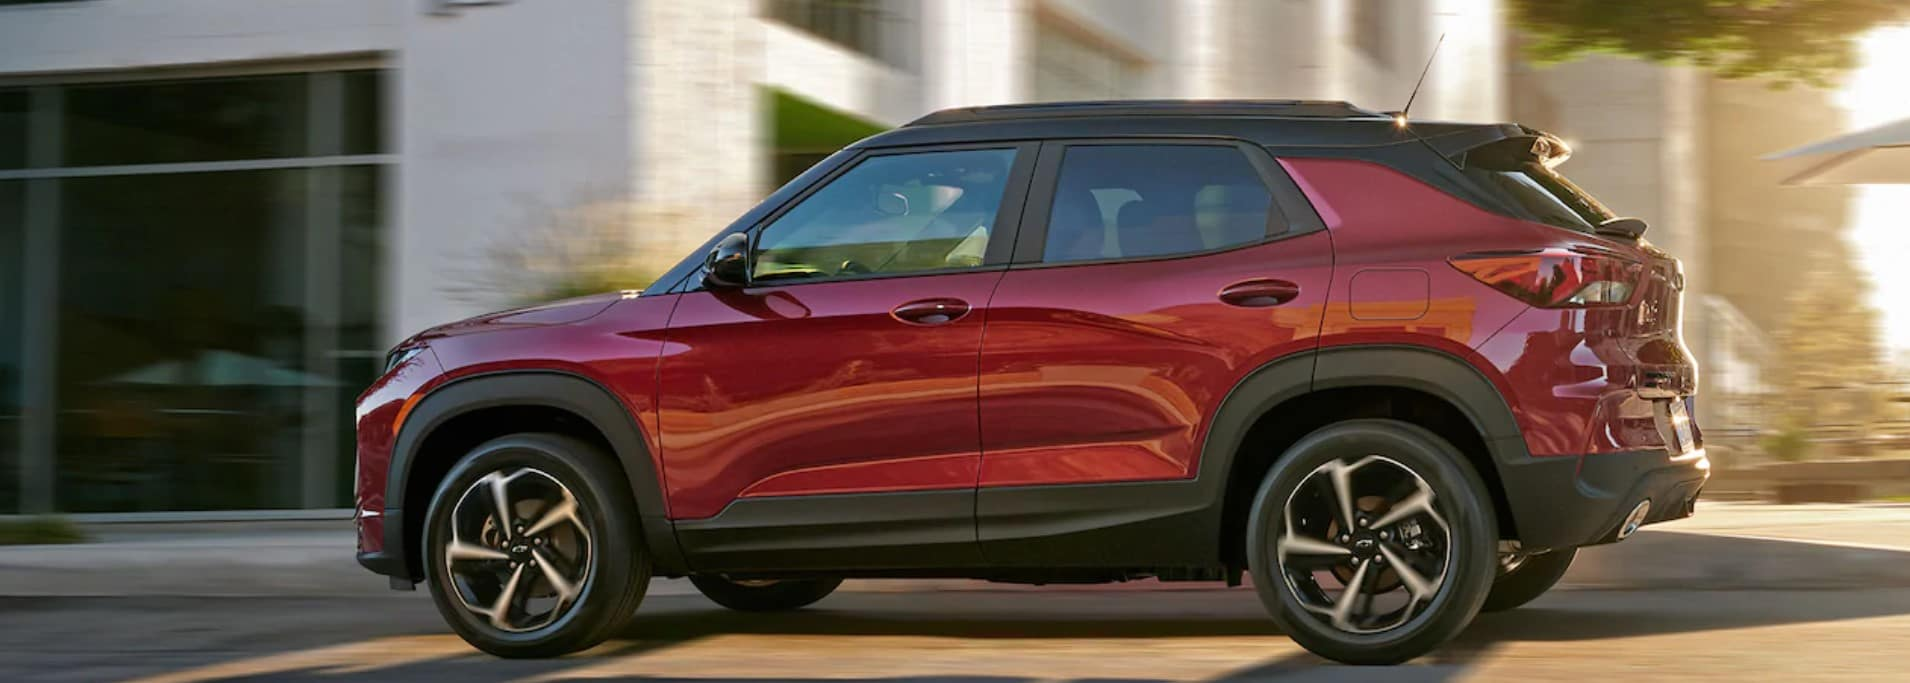 2021 Chevy Trailblazer near St. Louis